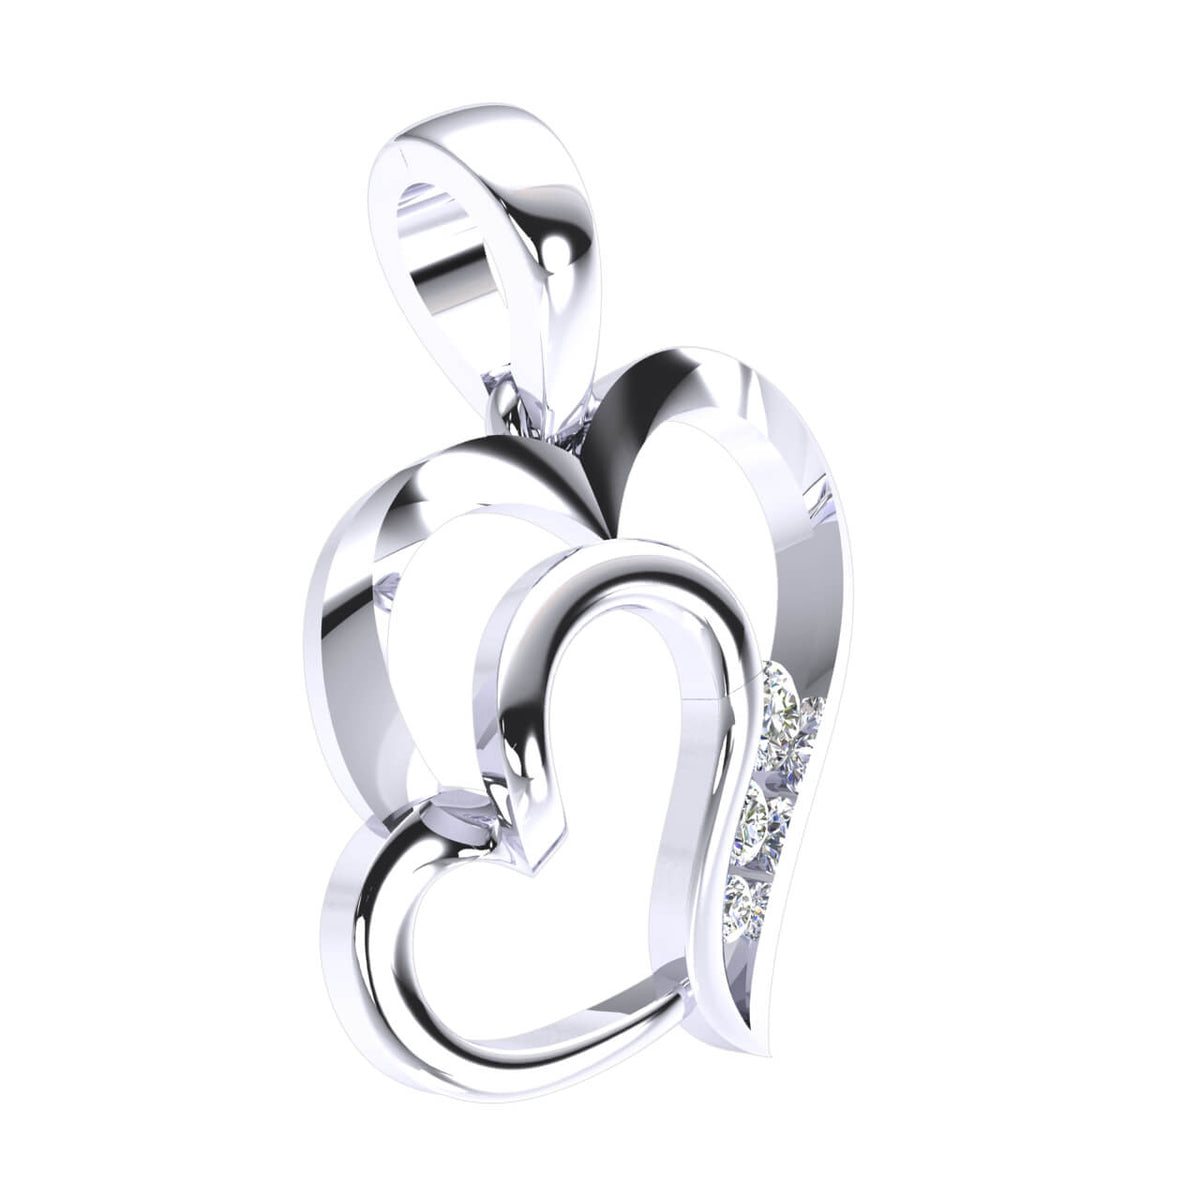 0.10 Ct 3-Stone Drop Round GH I1-I2 Diamond Unisex Heart Pendant 925 Sterling Silver